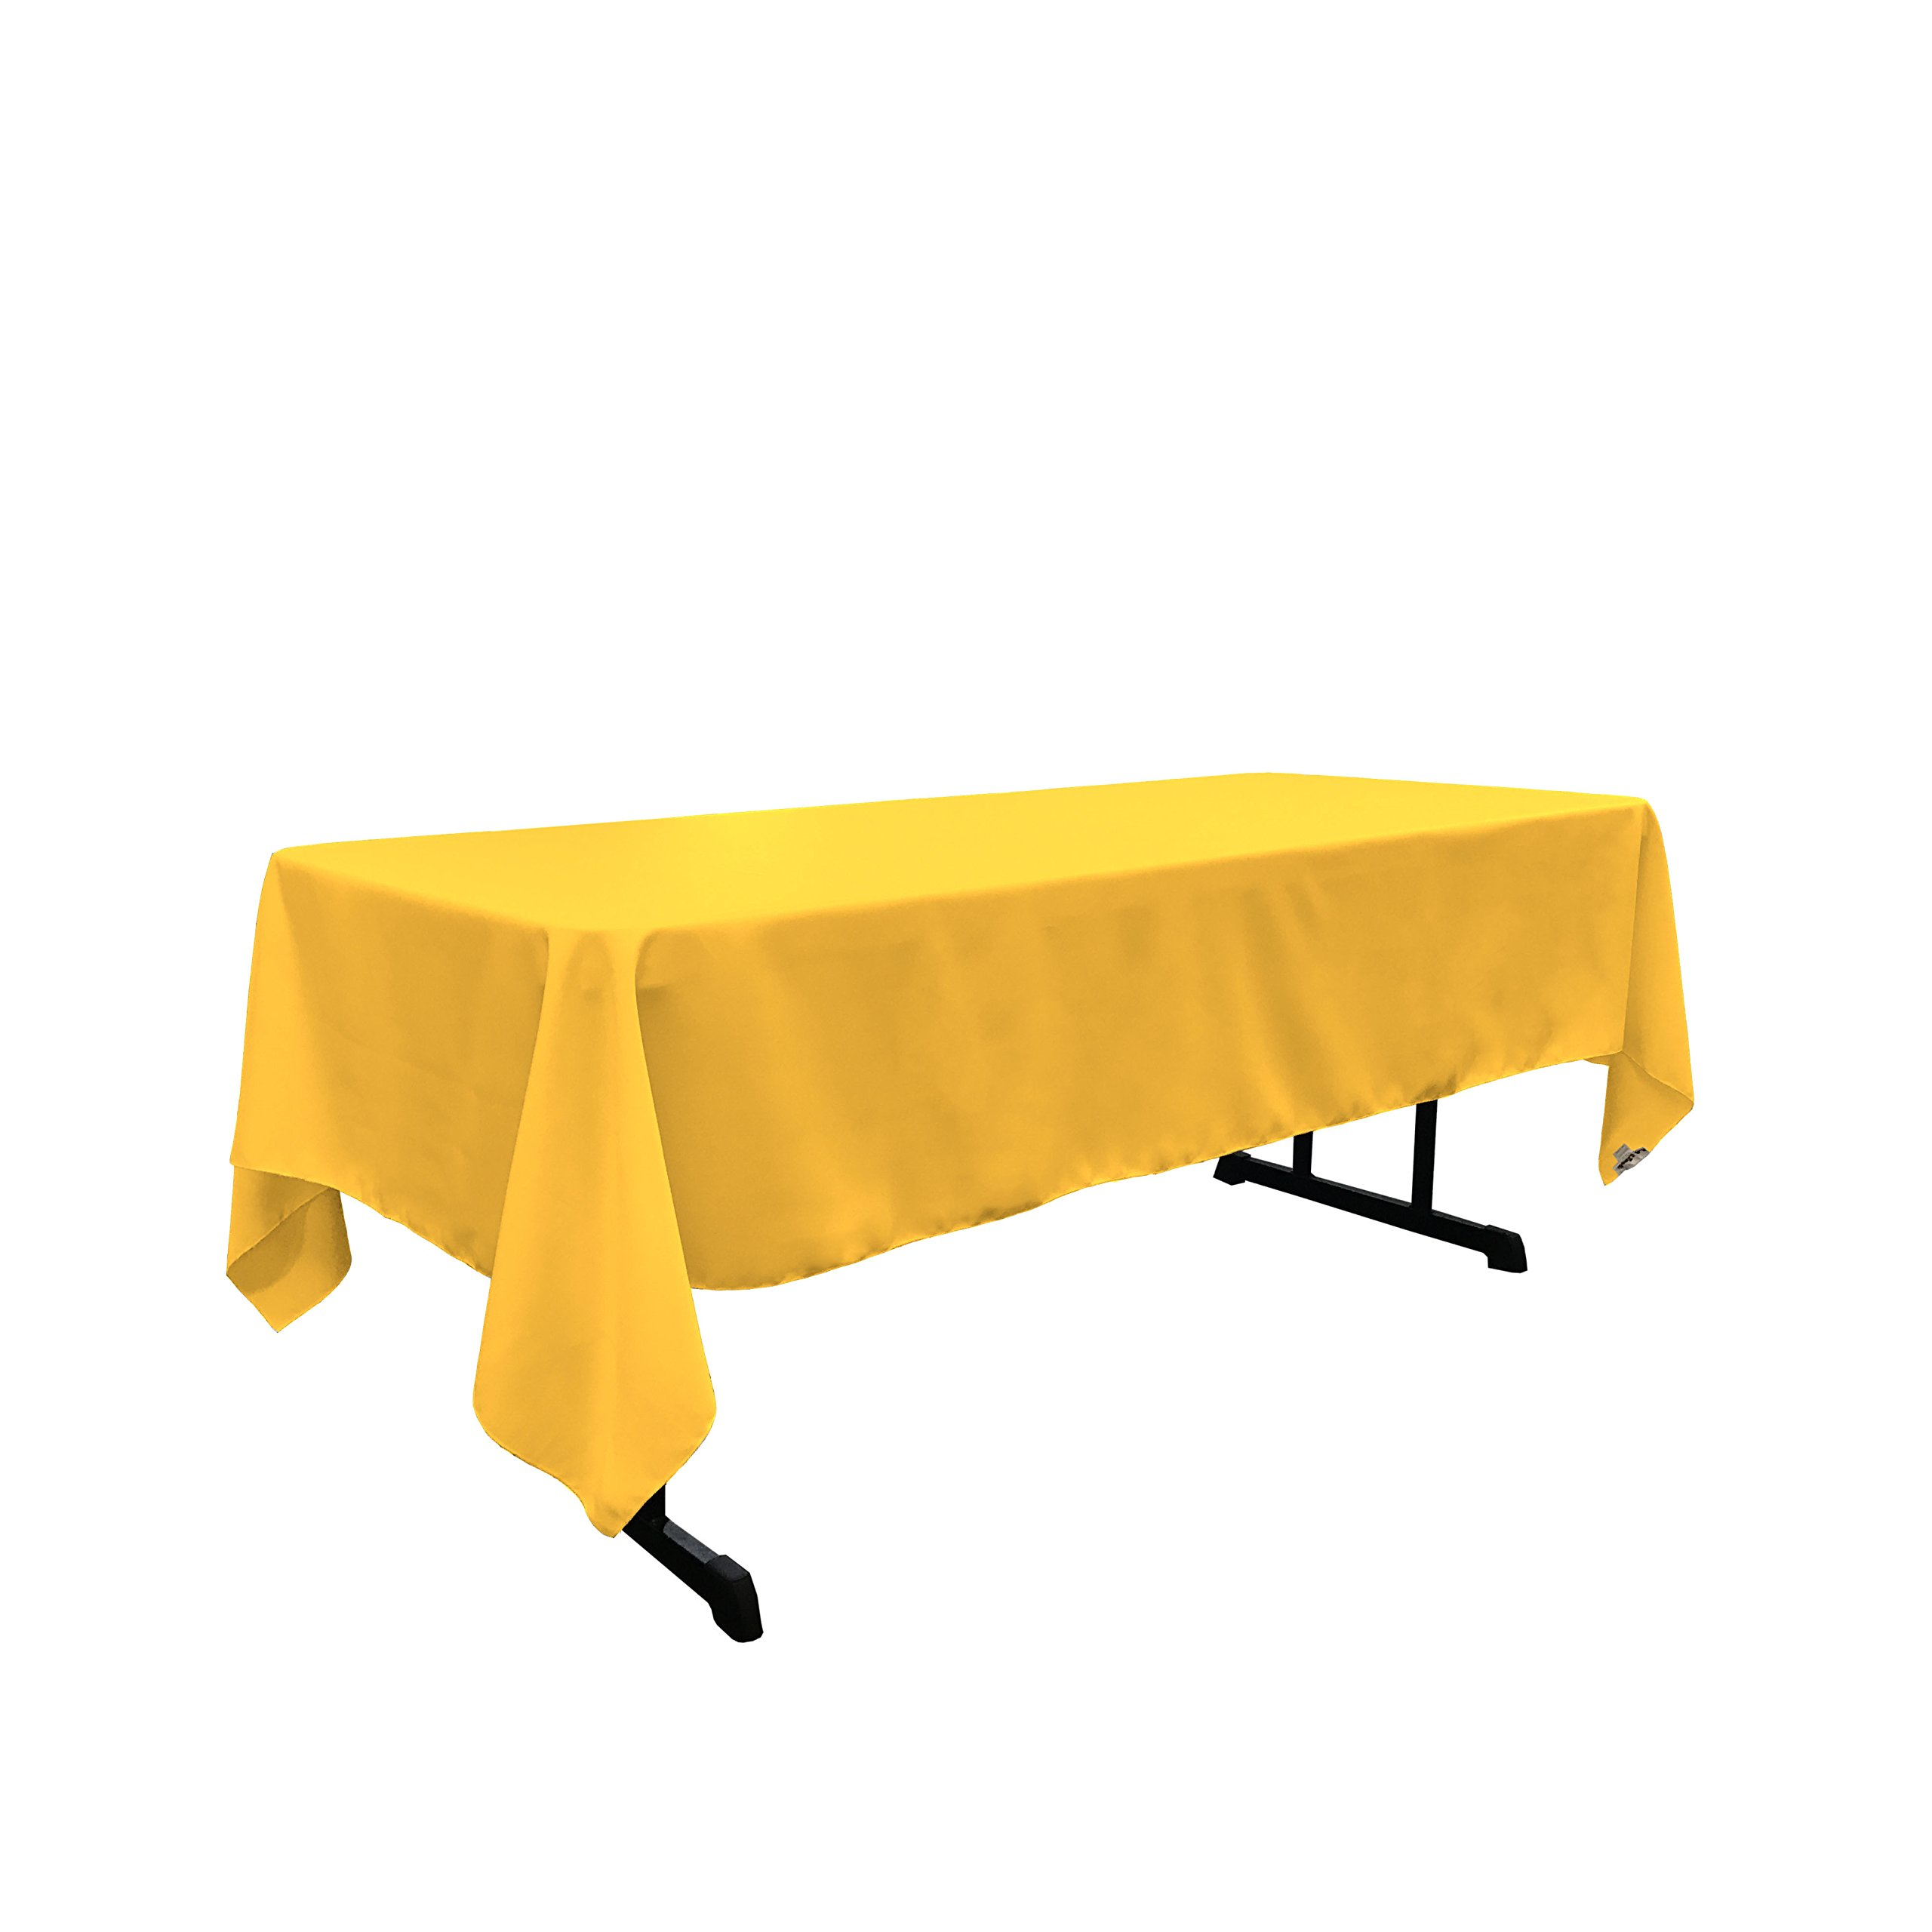 LA Linen Polyester Poplin Rectangular Tablecloth, 60 by 102-Inch, Yellow Dark